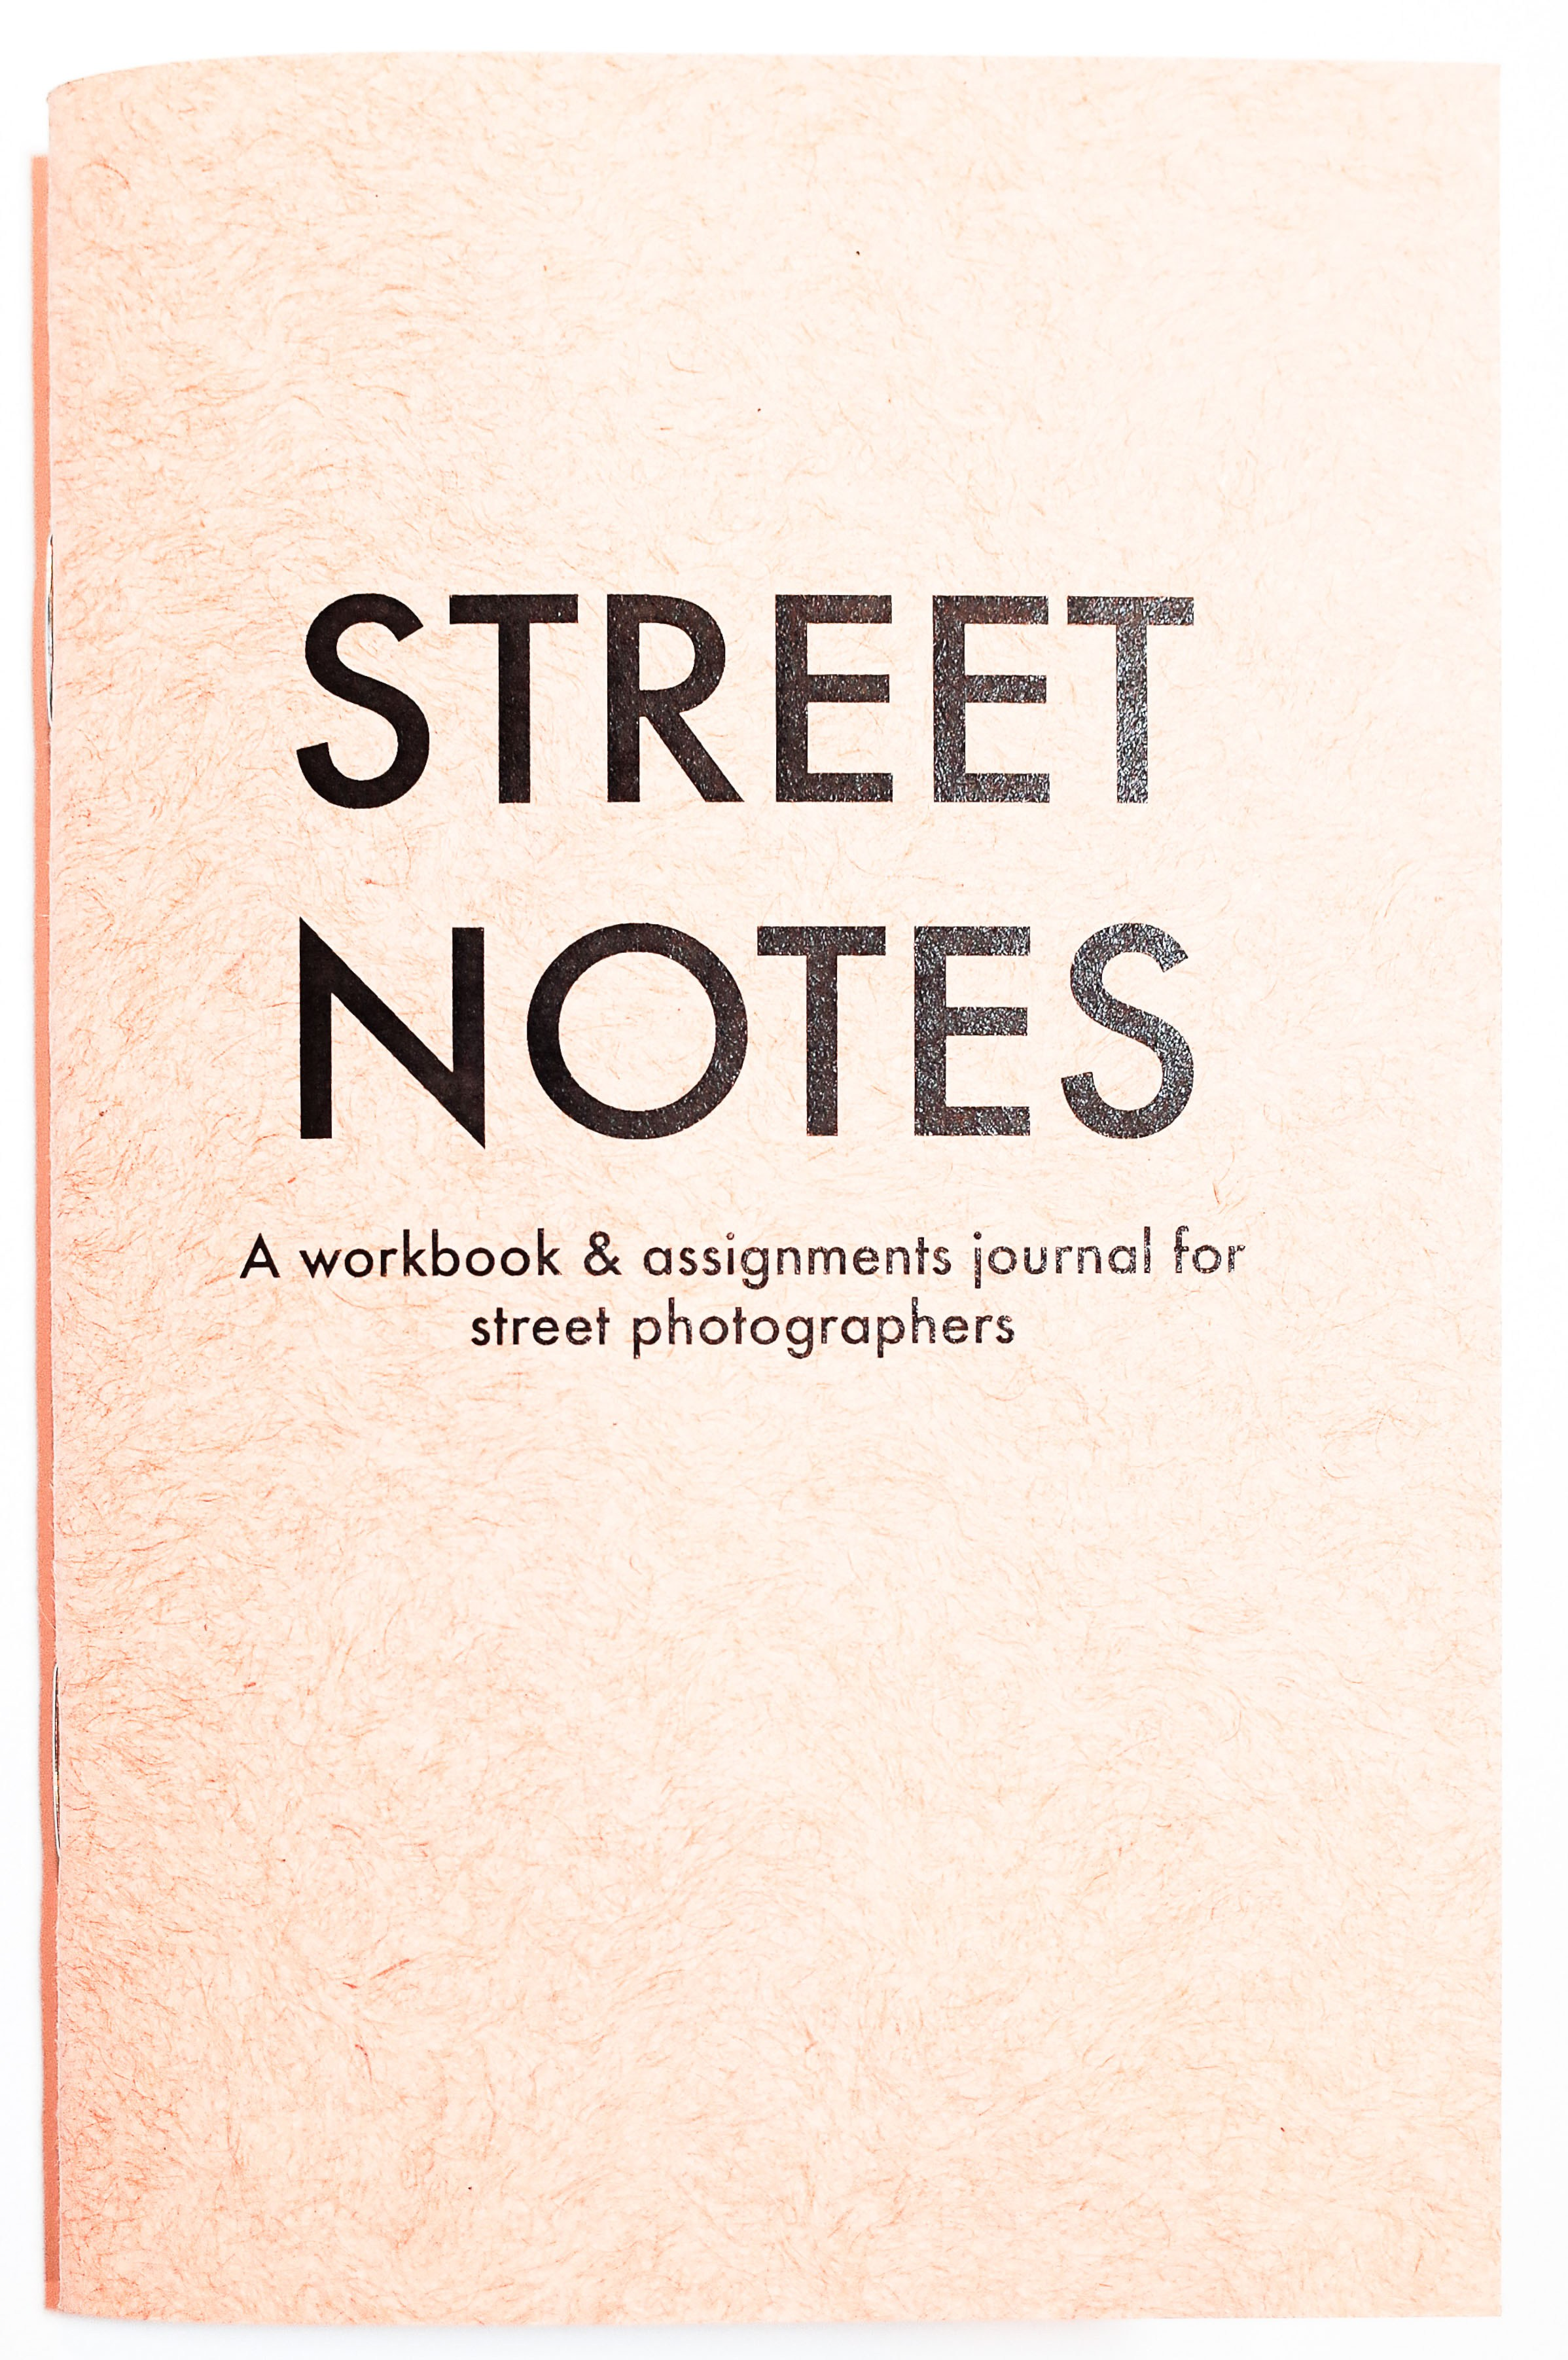 Street Notes by Cindy Nguyen